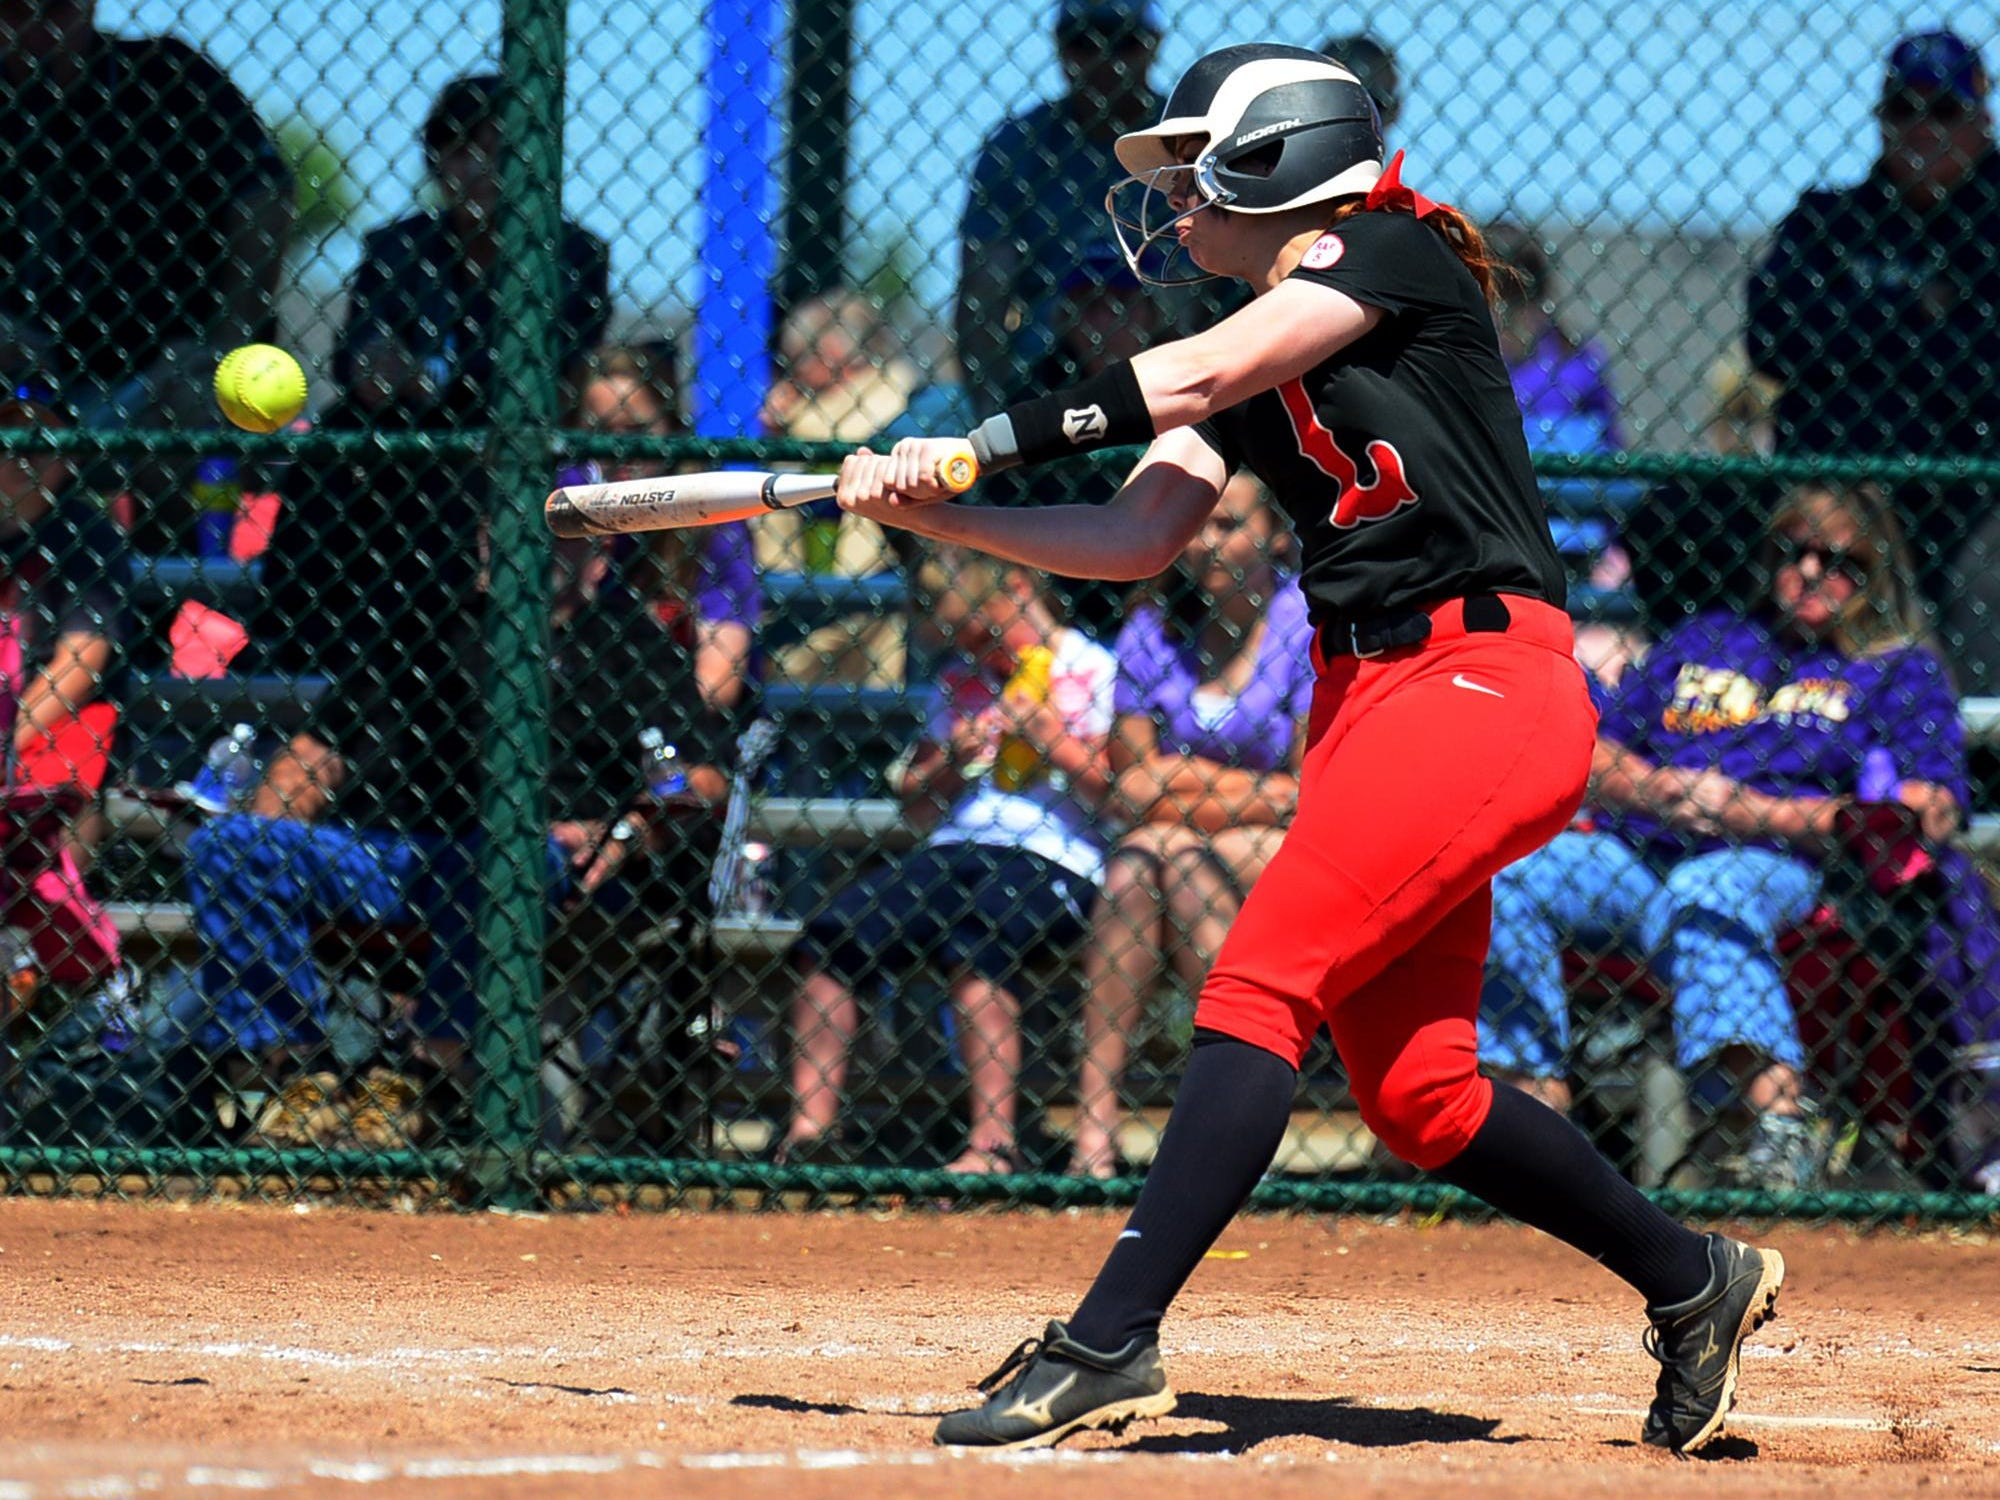 Lexington's Samantha McDaniel hit a walk-off two-RBI triple in the seventh inning to send the Lady Tigers to the Class AA state title game.